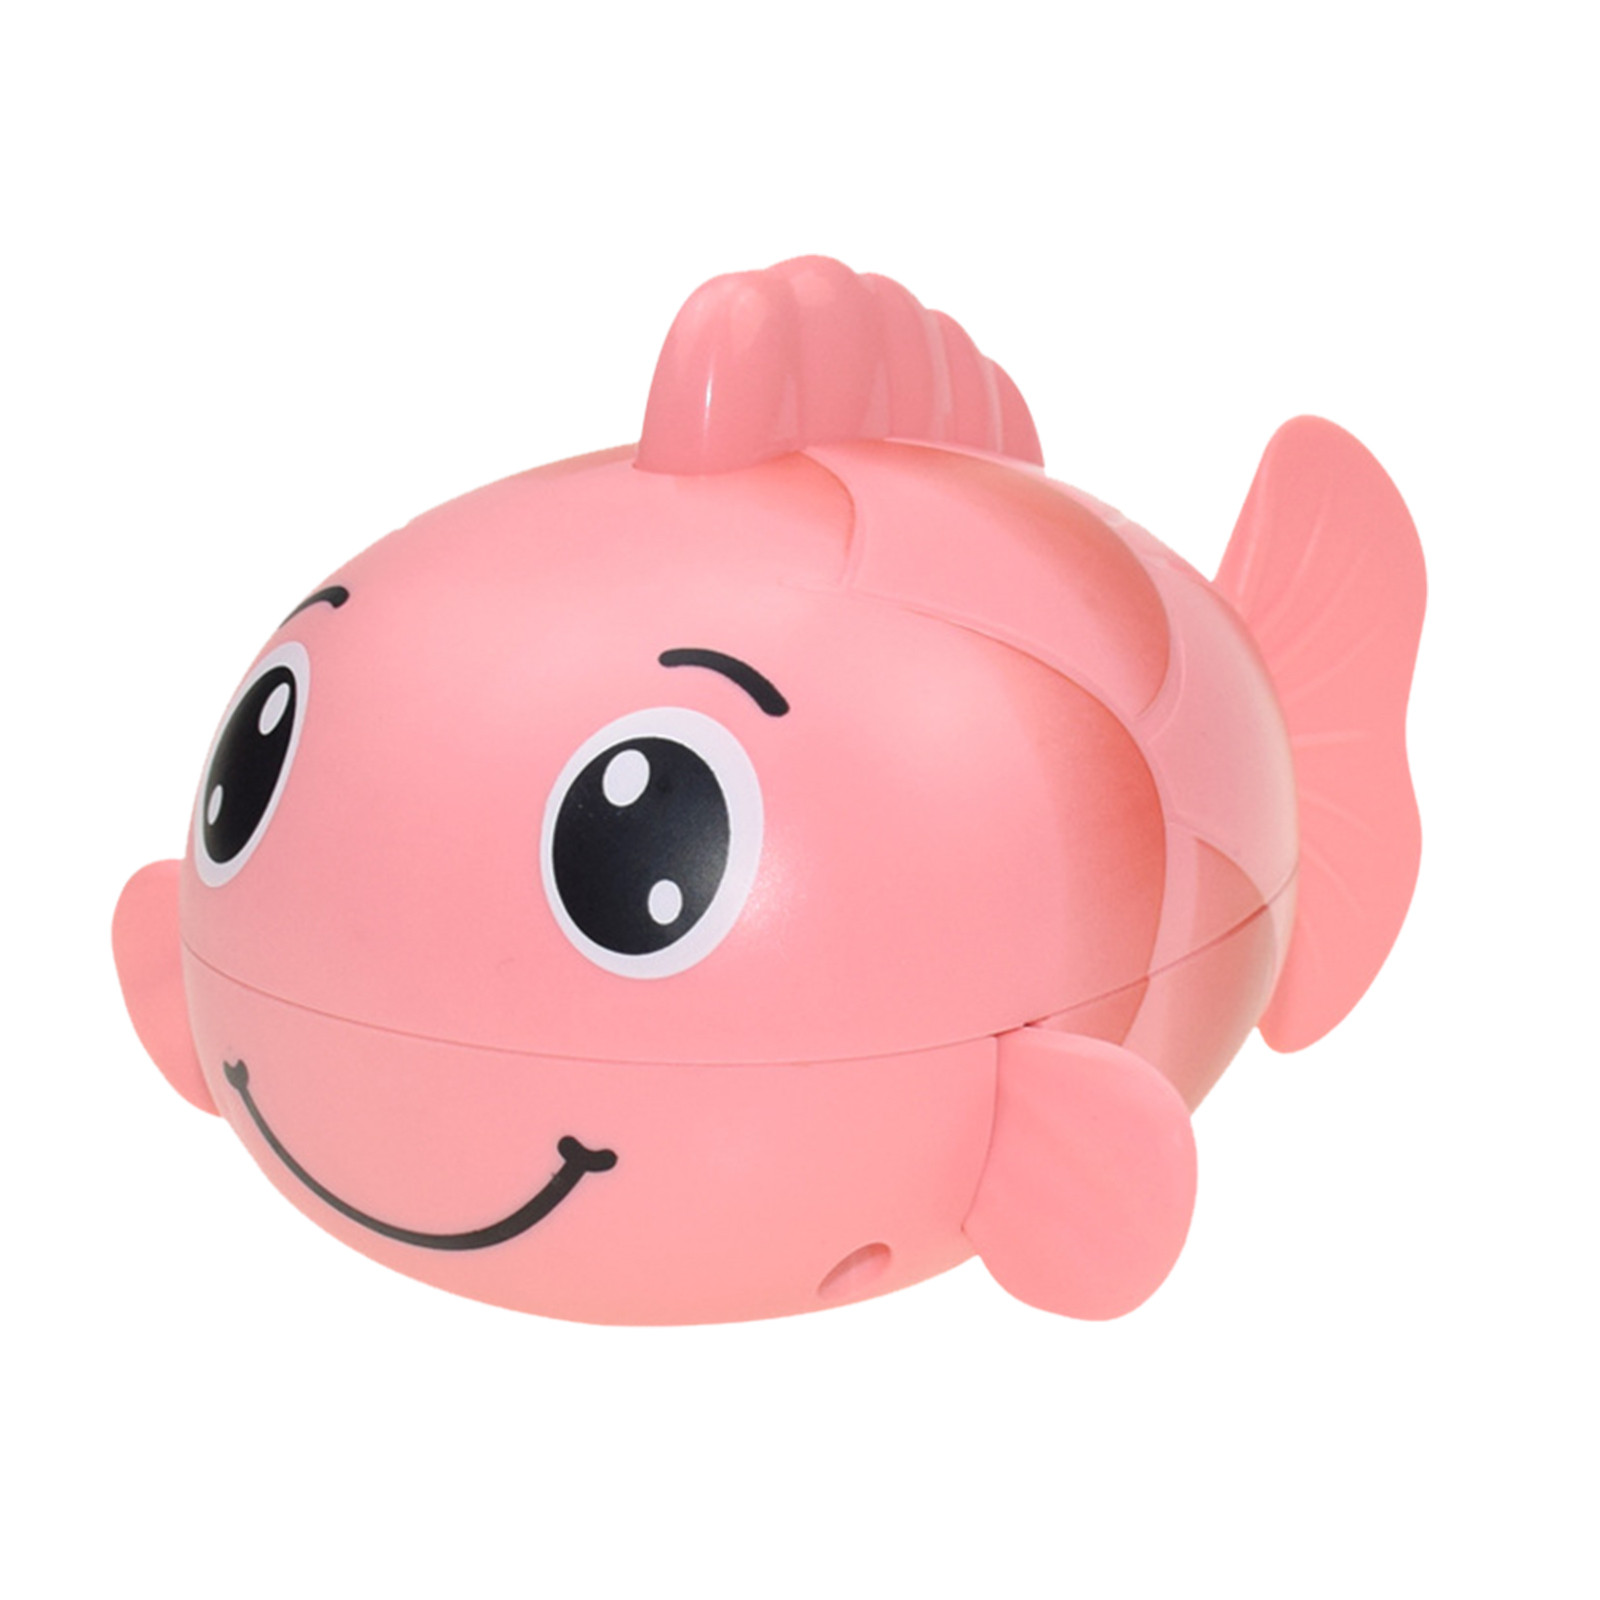 Baby Bath Toys Children's Water Toys Baby Bath Chain Wind Up Swimming Carp Baby Bathroom Toys, Fun Little Gift For Bath Toys New